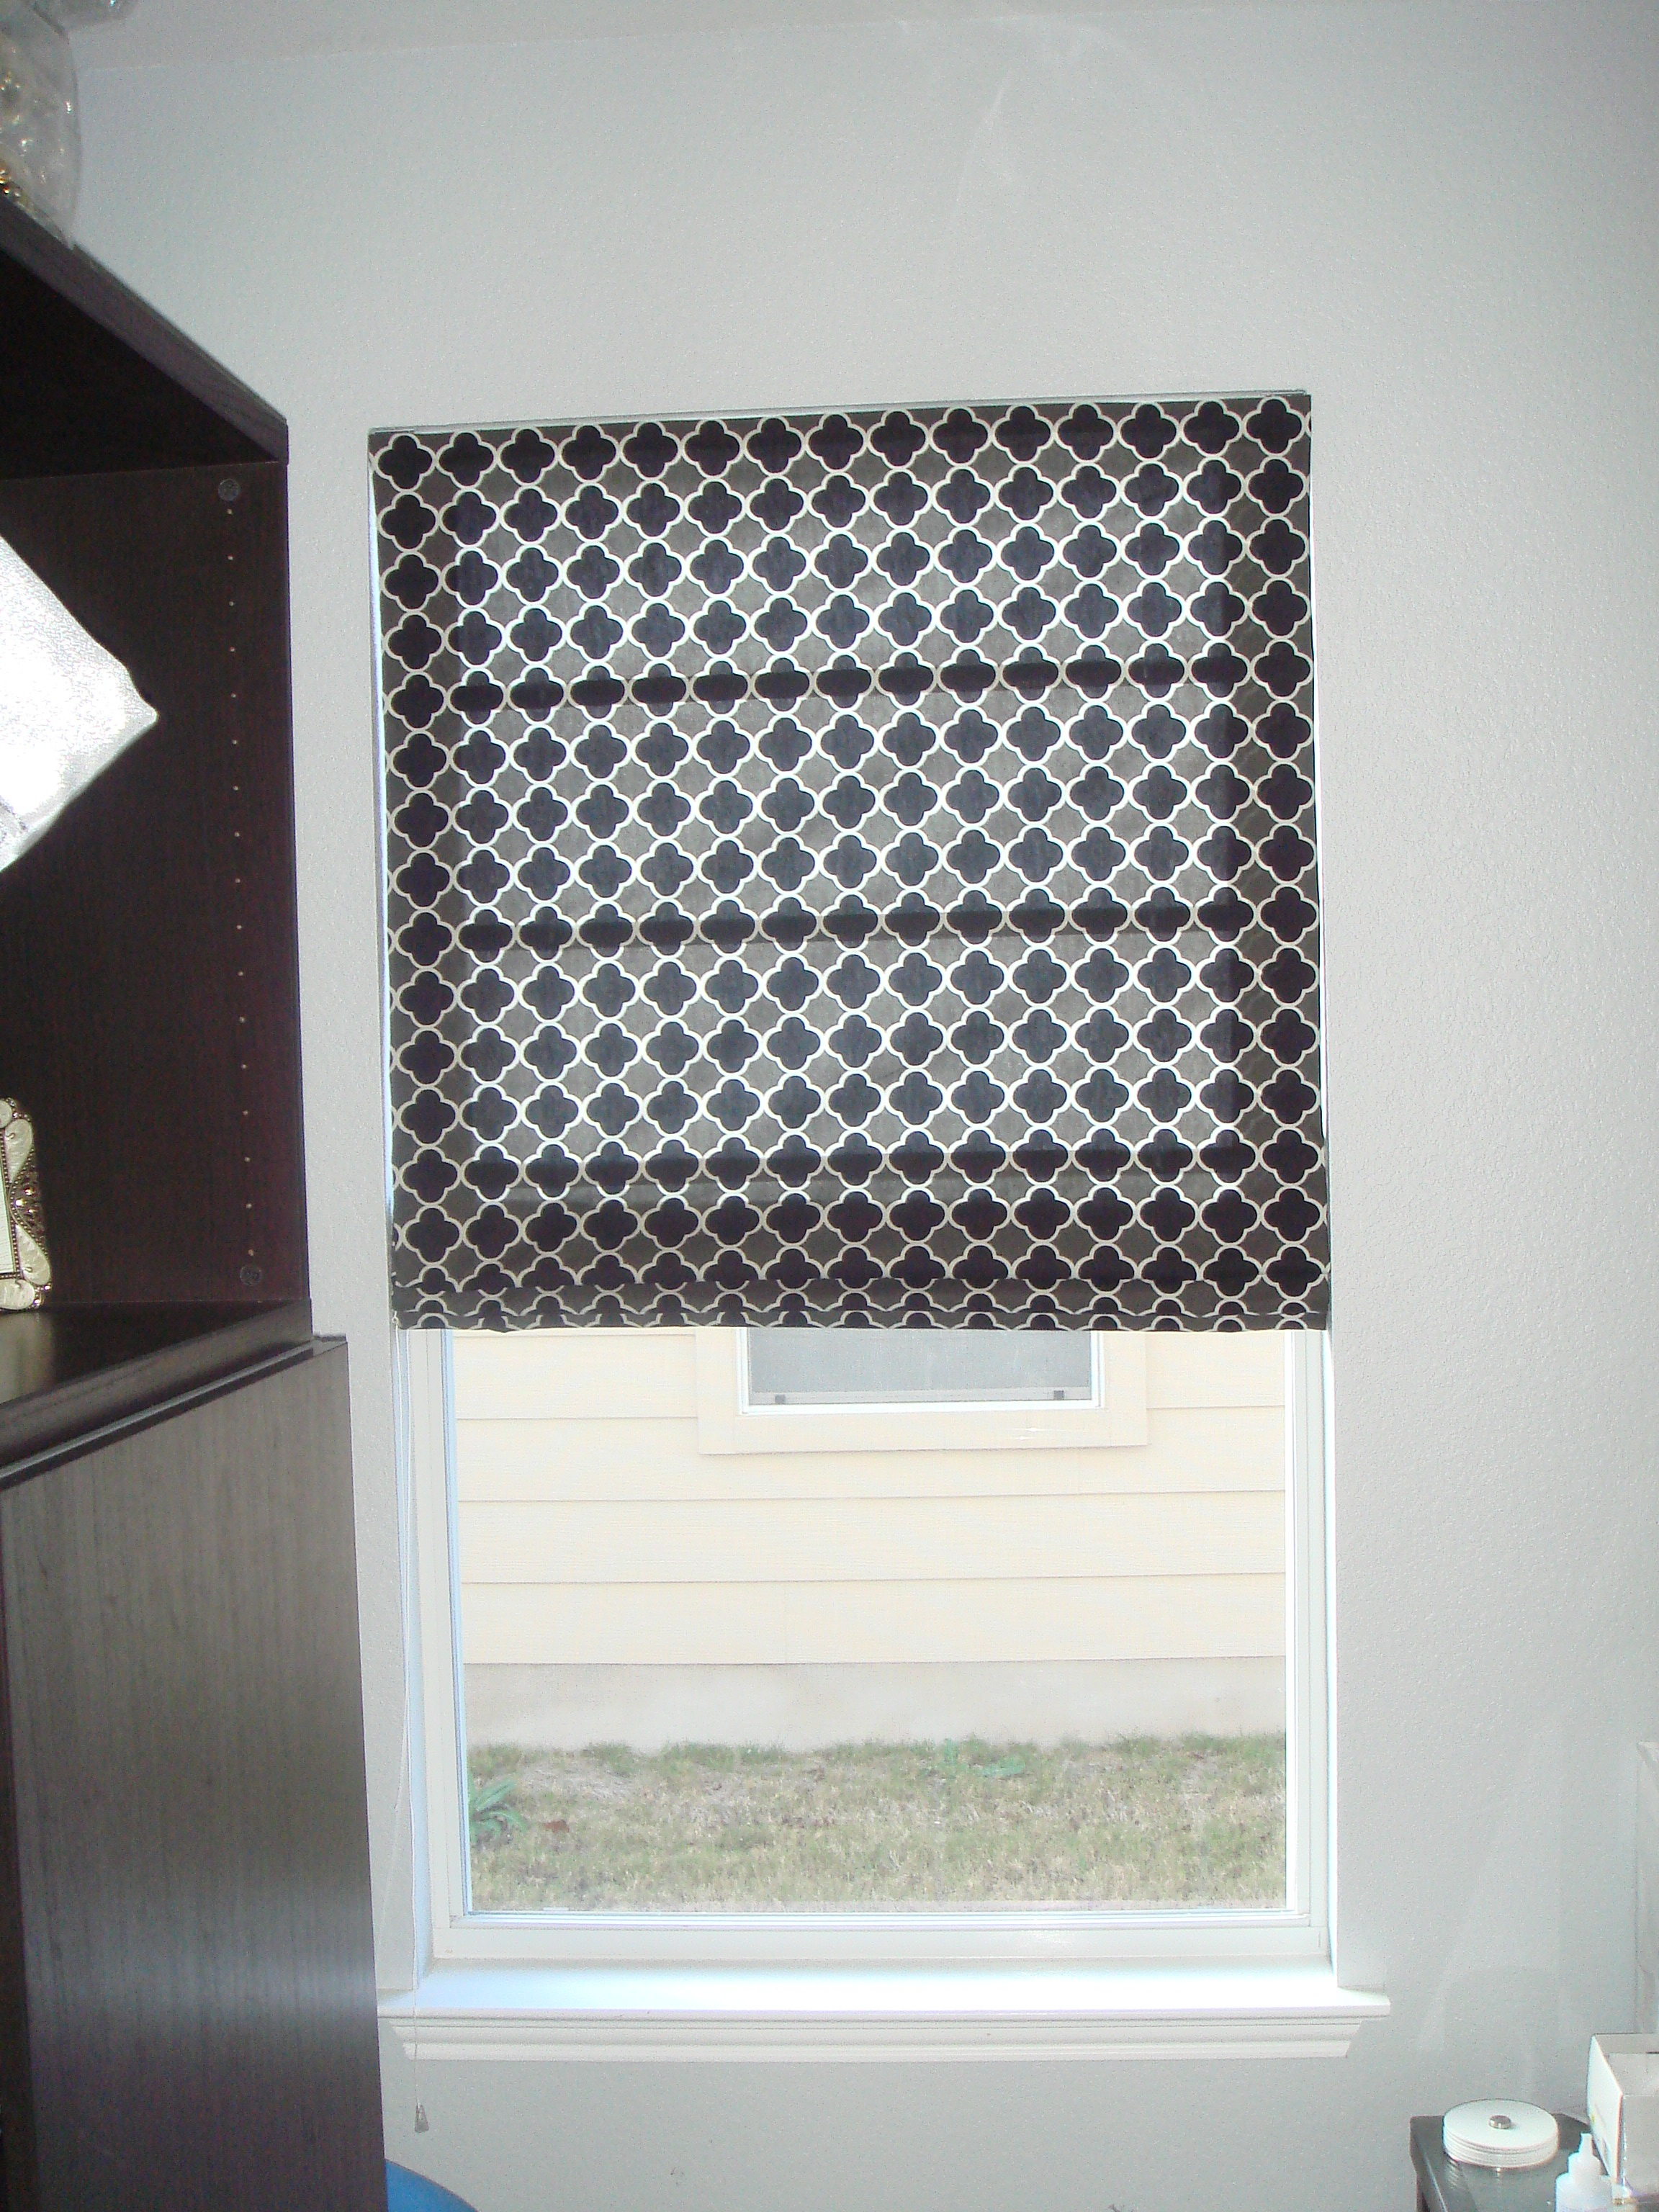 blog bithead buy best s motorized blinds phase window